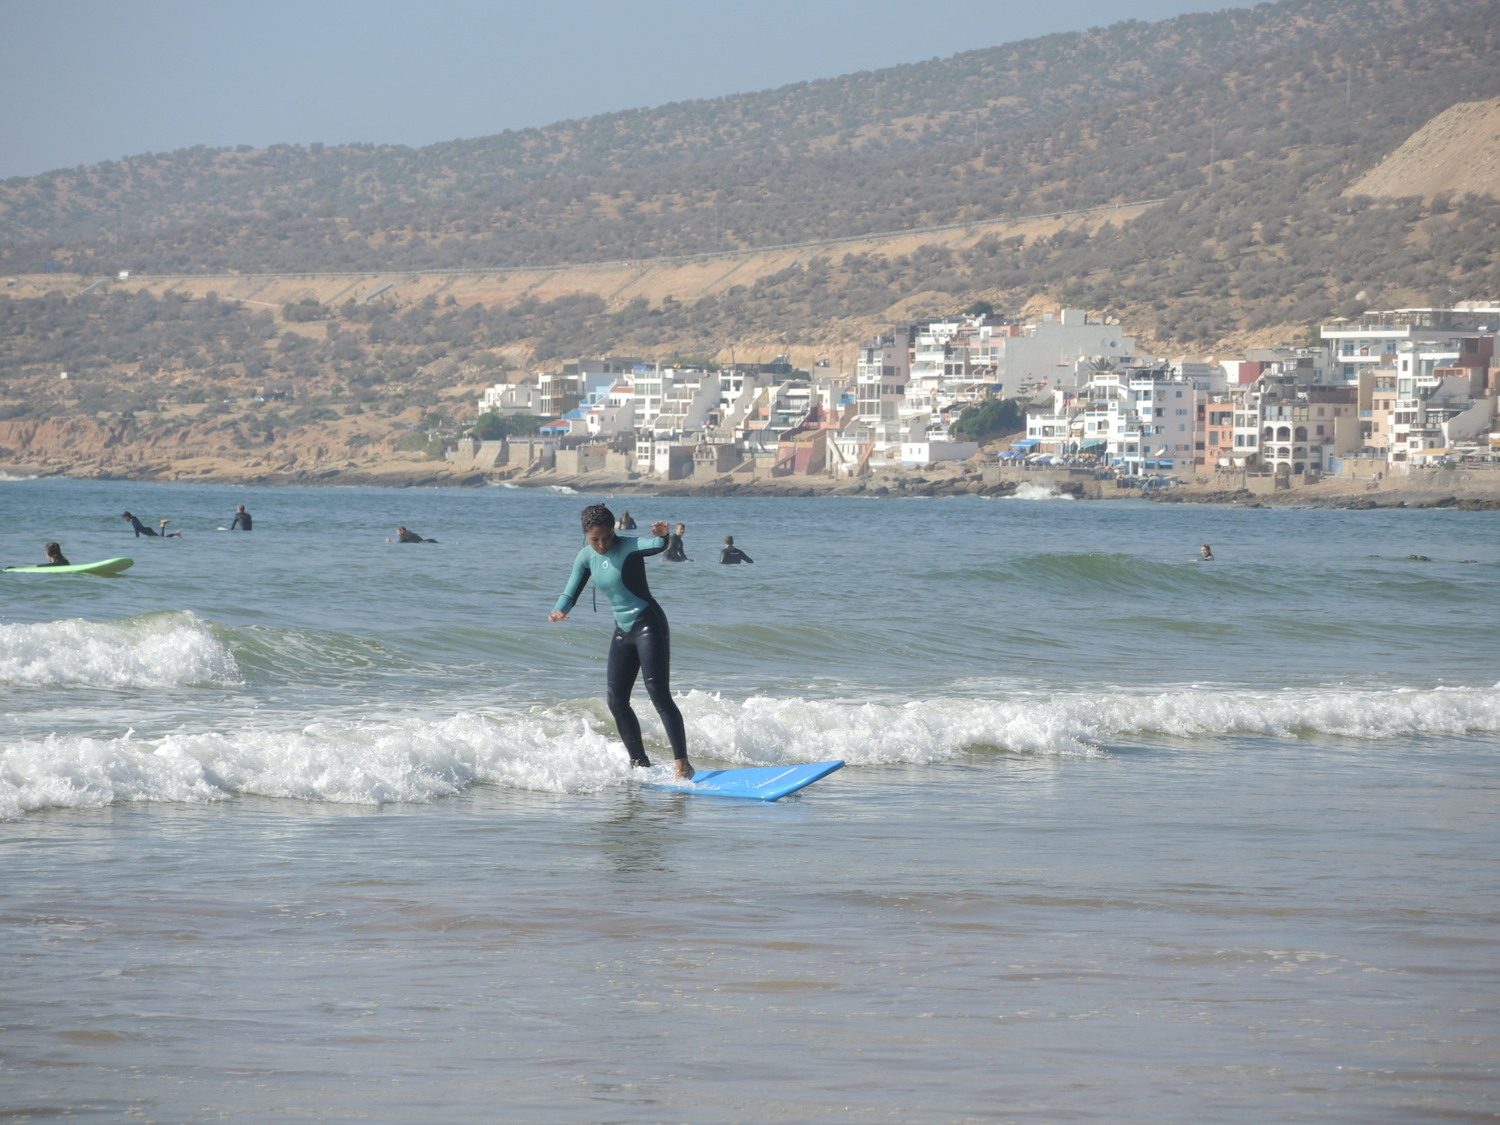 Surfers in Morocco, on the coast of Taghazout